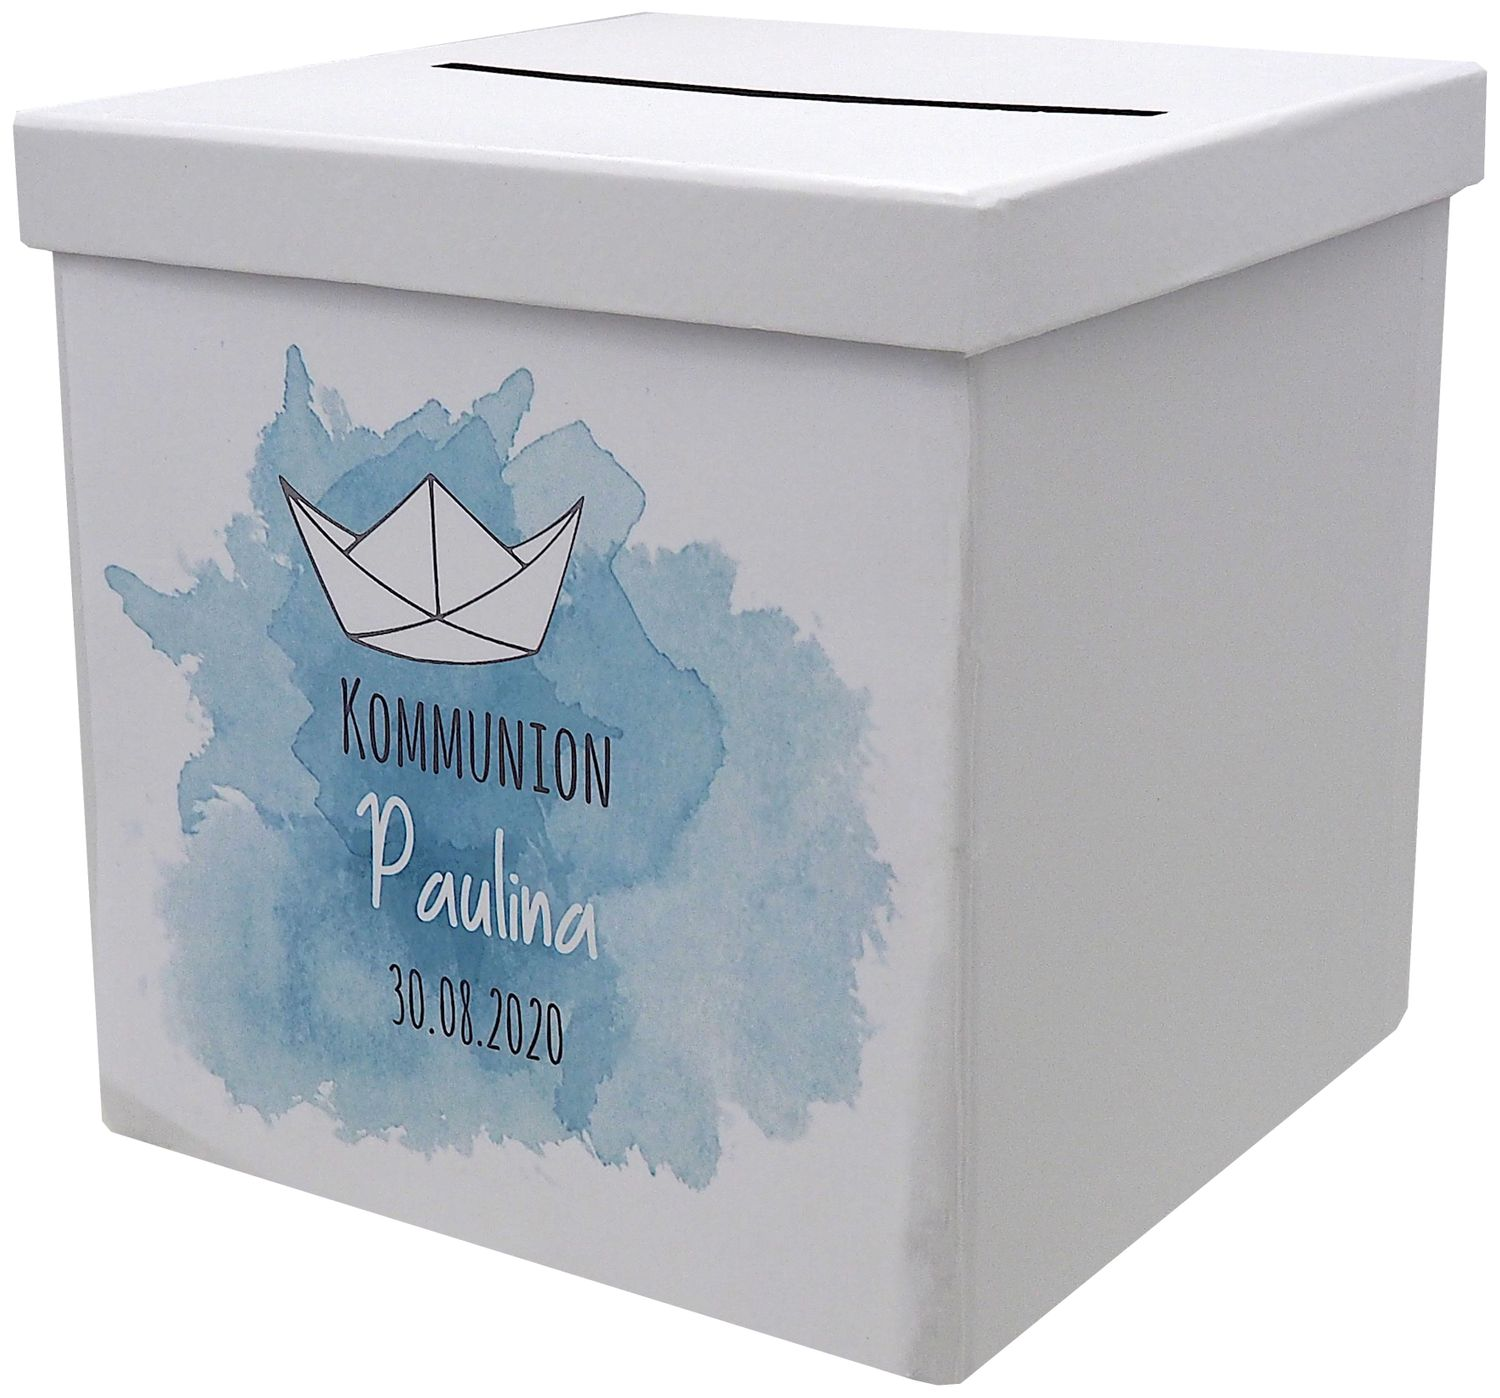 Briefbox Kartenbox Taufe Kommunion Konfirmation Boot Papierboot Tischdeko Personalisiertes Geschenk